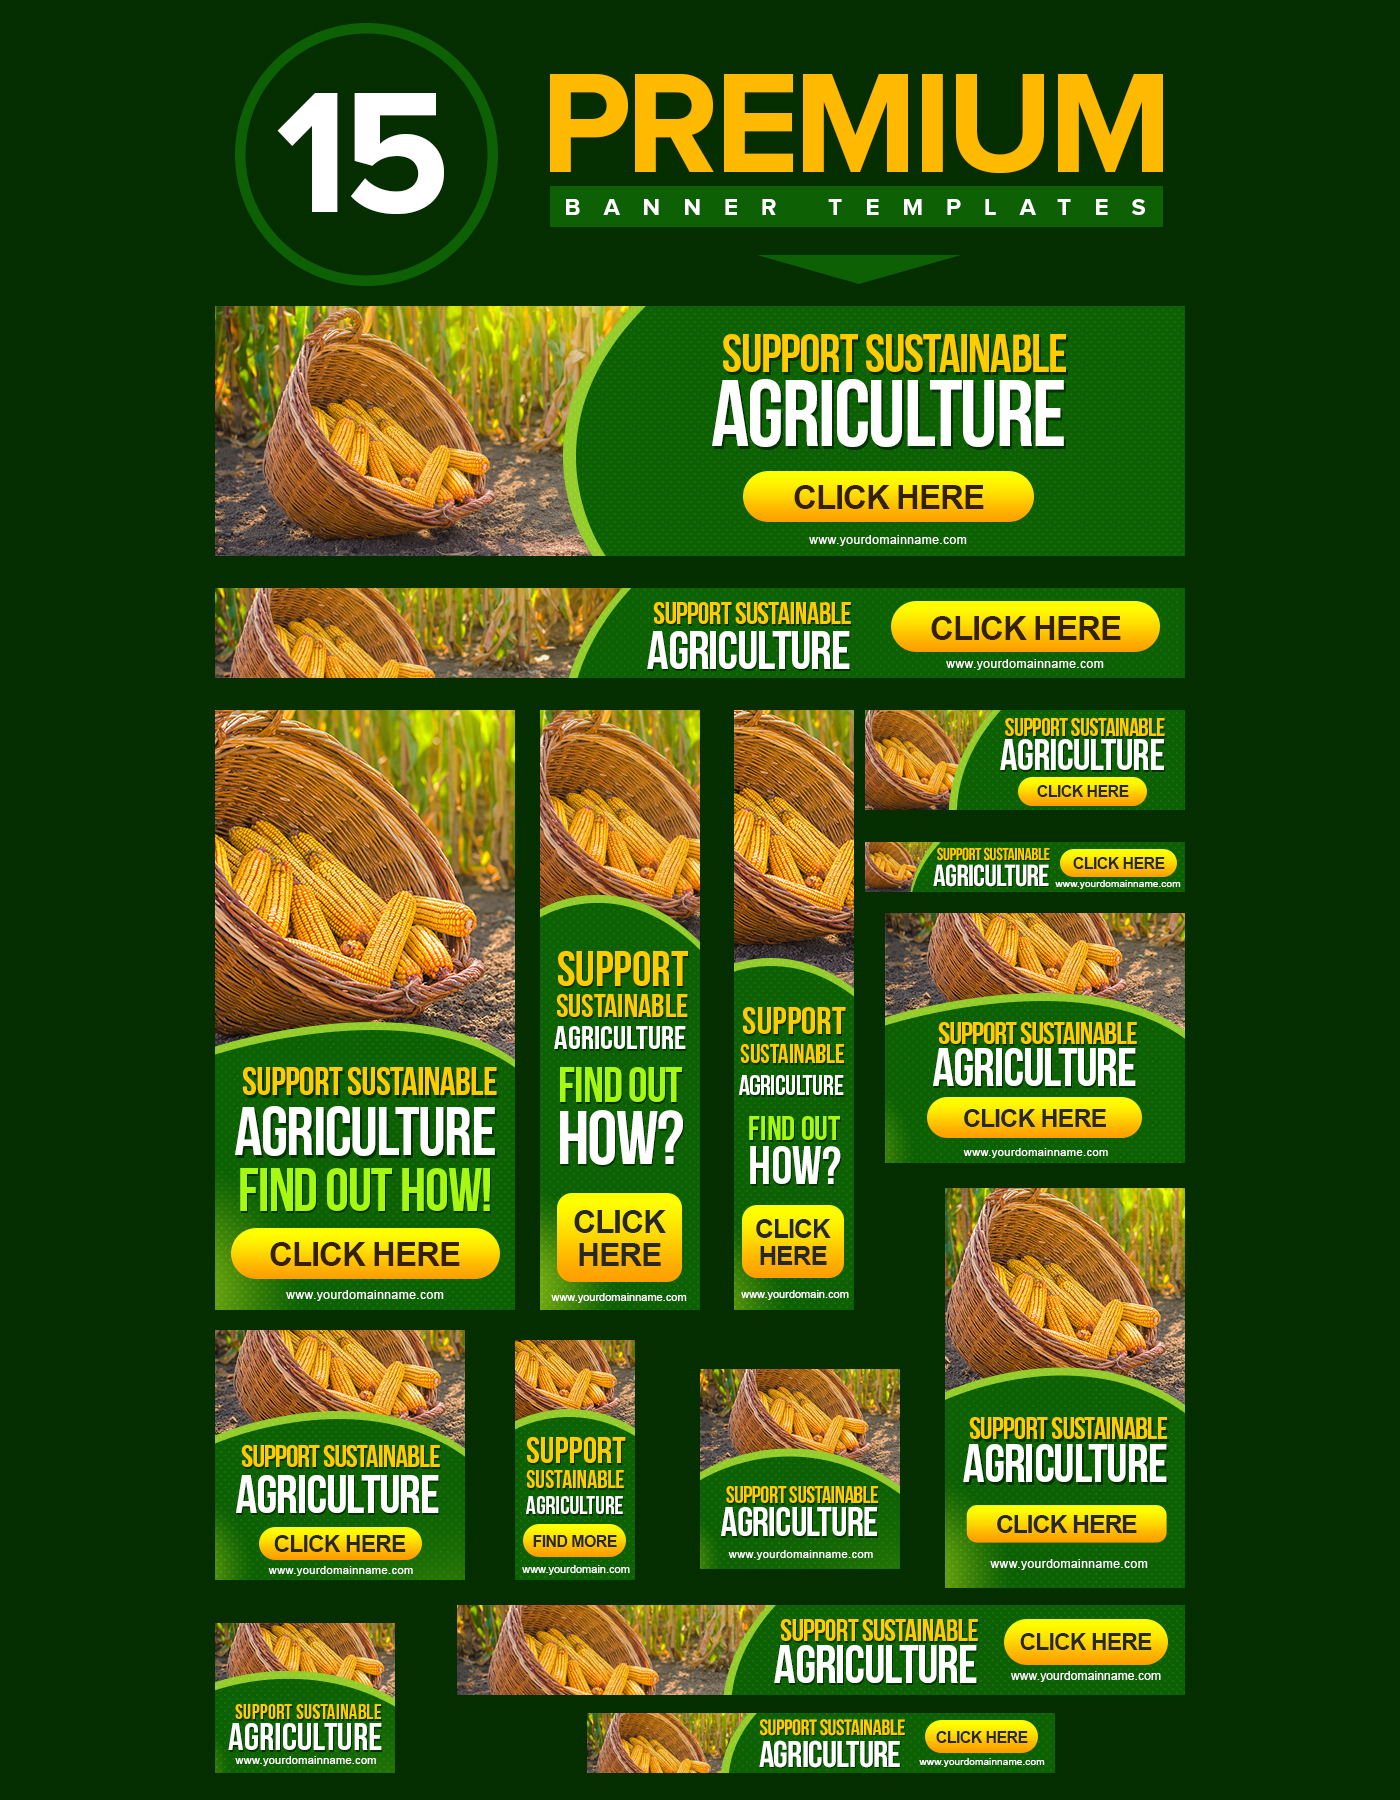 Agriculture Banners green banners banner designs banner templates